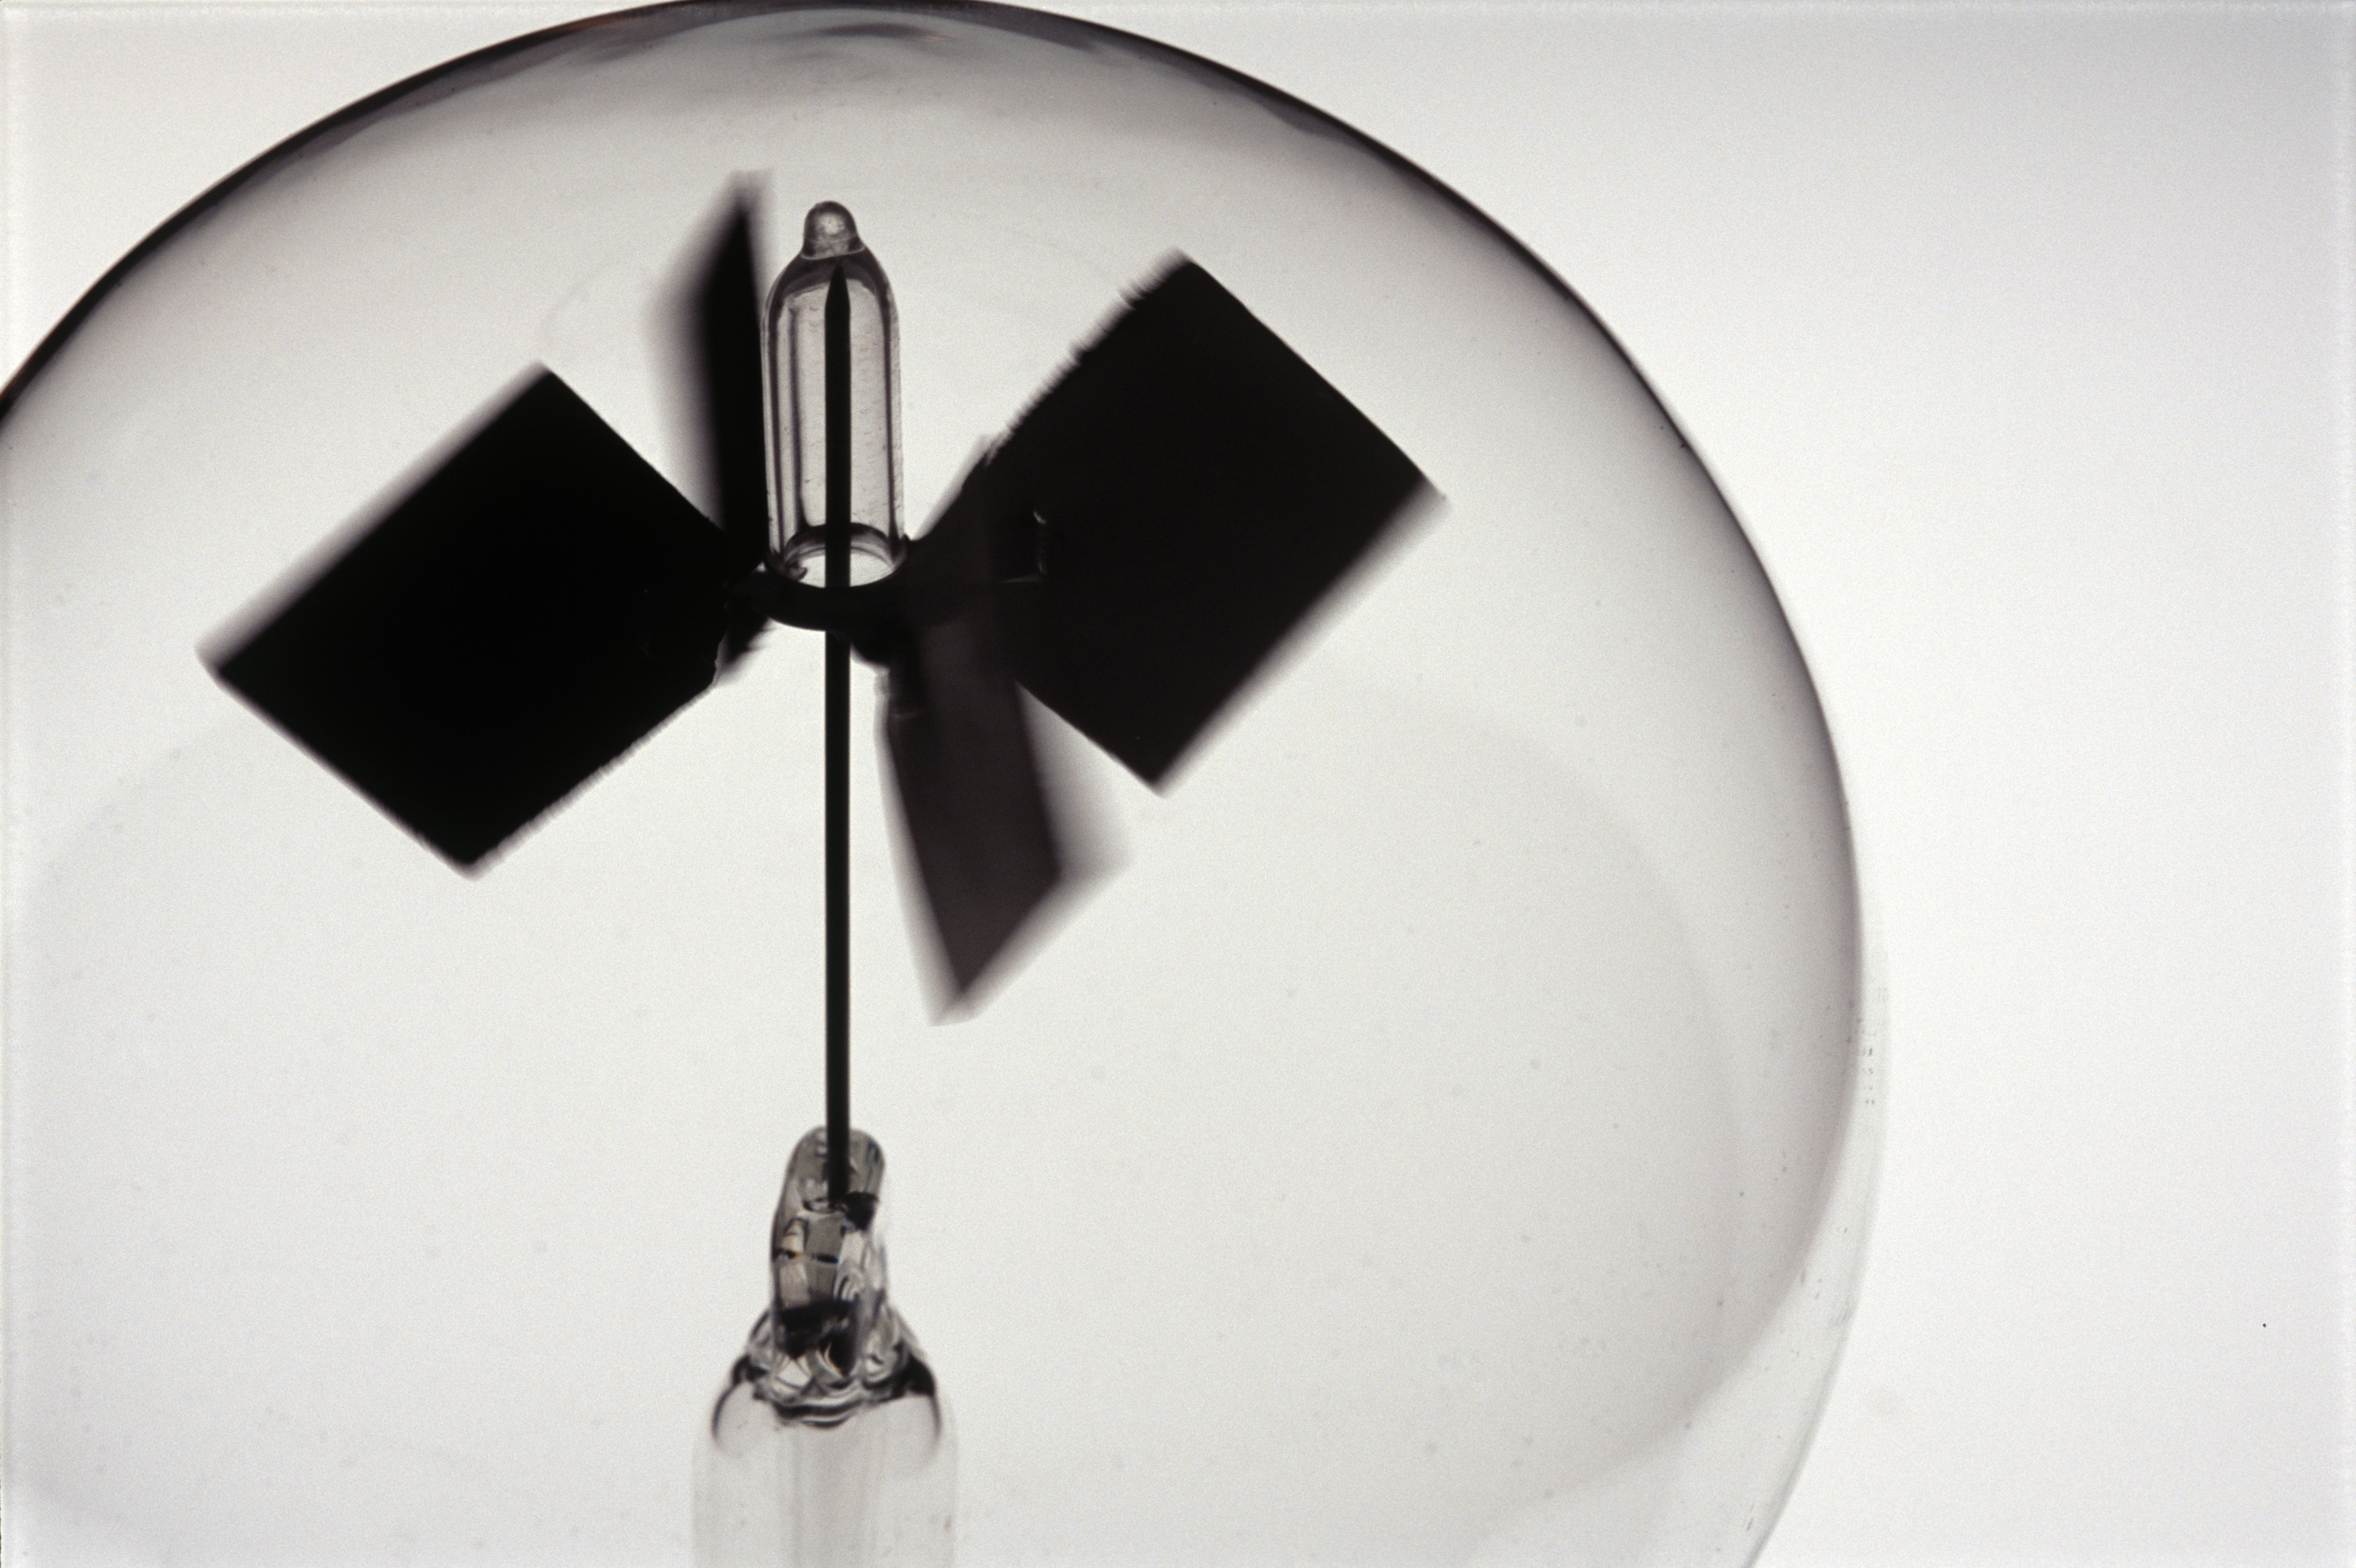 silhouette image of a light mill, a partially evacuated flash sphere with white and black painted light vanes inside which spin when light radiation falles on them